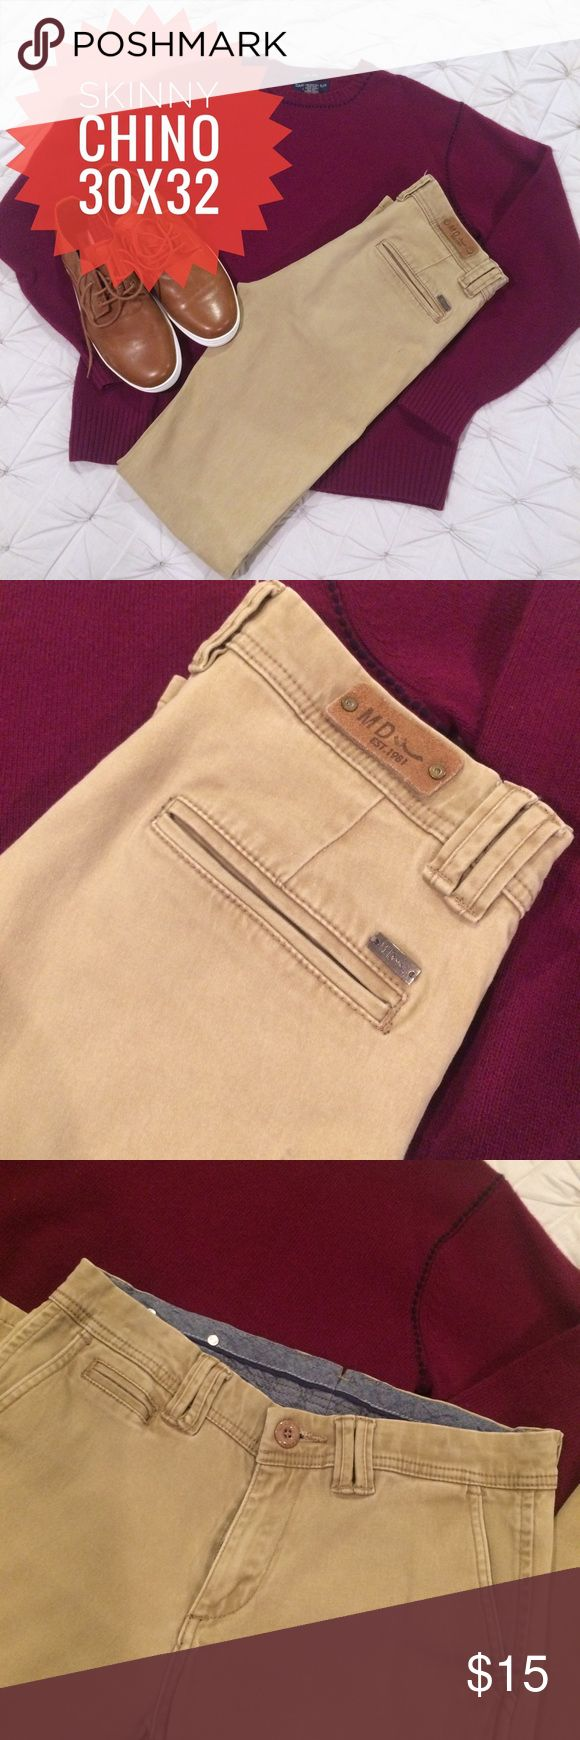 Men's skinny Chinos in size 30x32 Men's skinny Chinos in size 30x32 Pants Chinos & Khakis